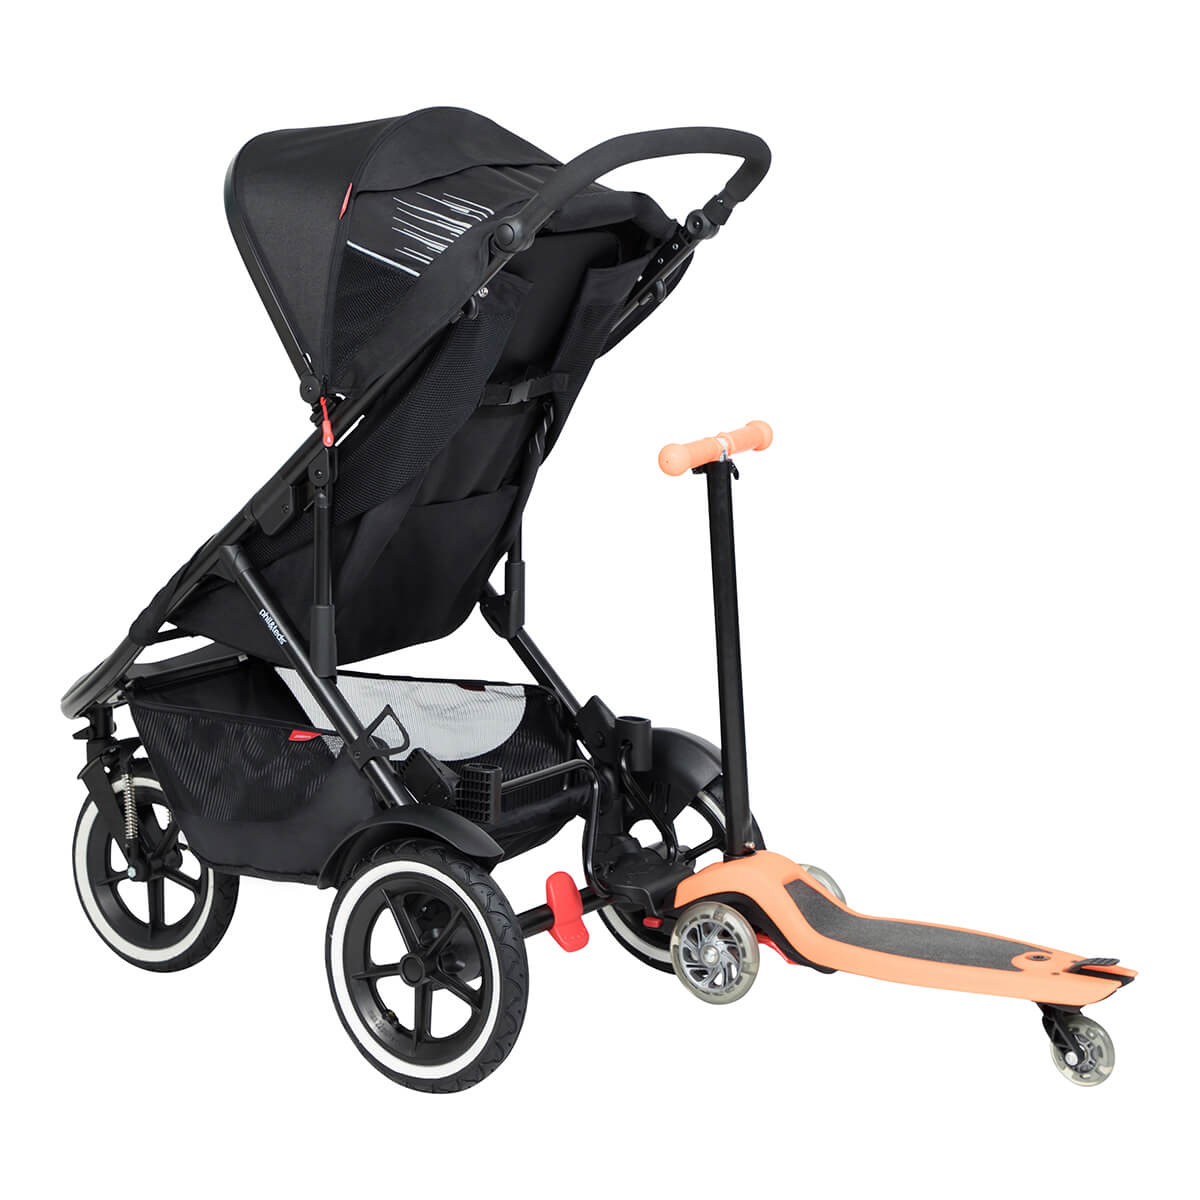 https://cdn.accentuate.io/4546157314153/19119322824809/philteds-sport-buggy-with-freerider-stroller-board-in-rear-v1625778162852.jpg?1200x1200